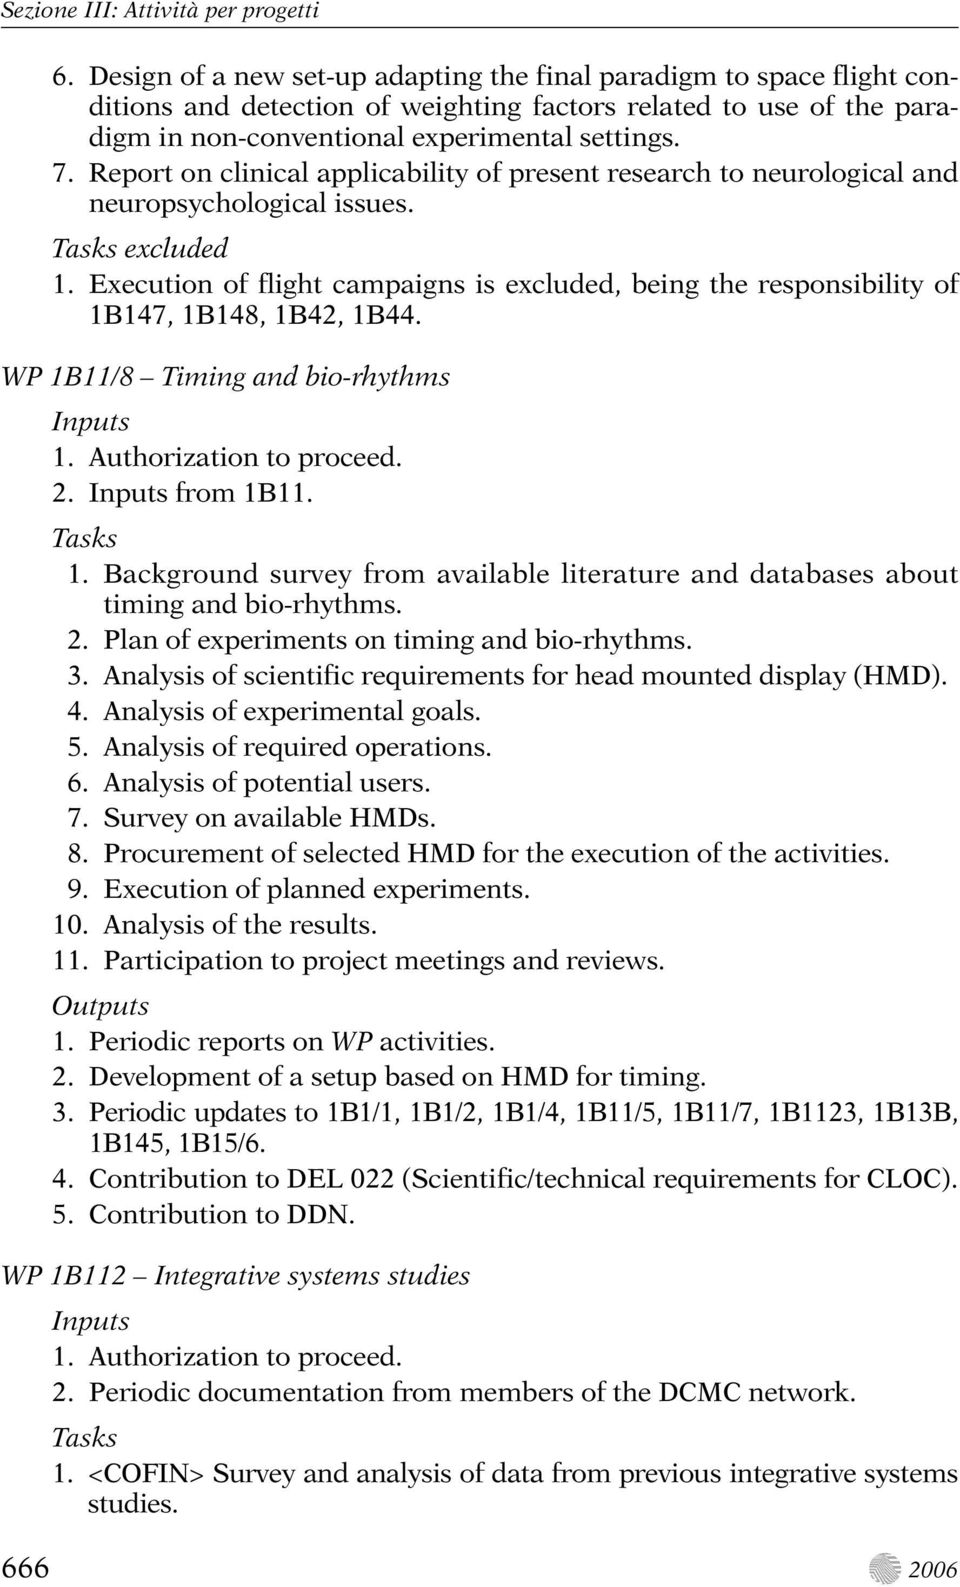 Report on clinical applicability of present research to neurological and neuropsychological issues. excluded 1.